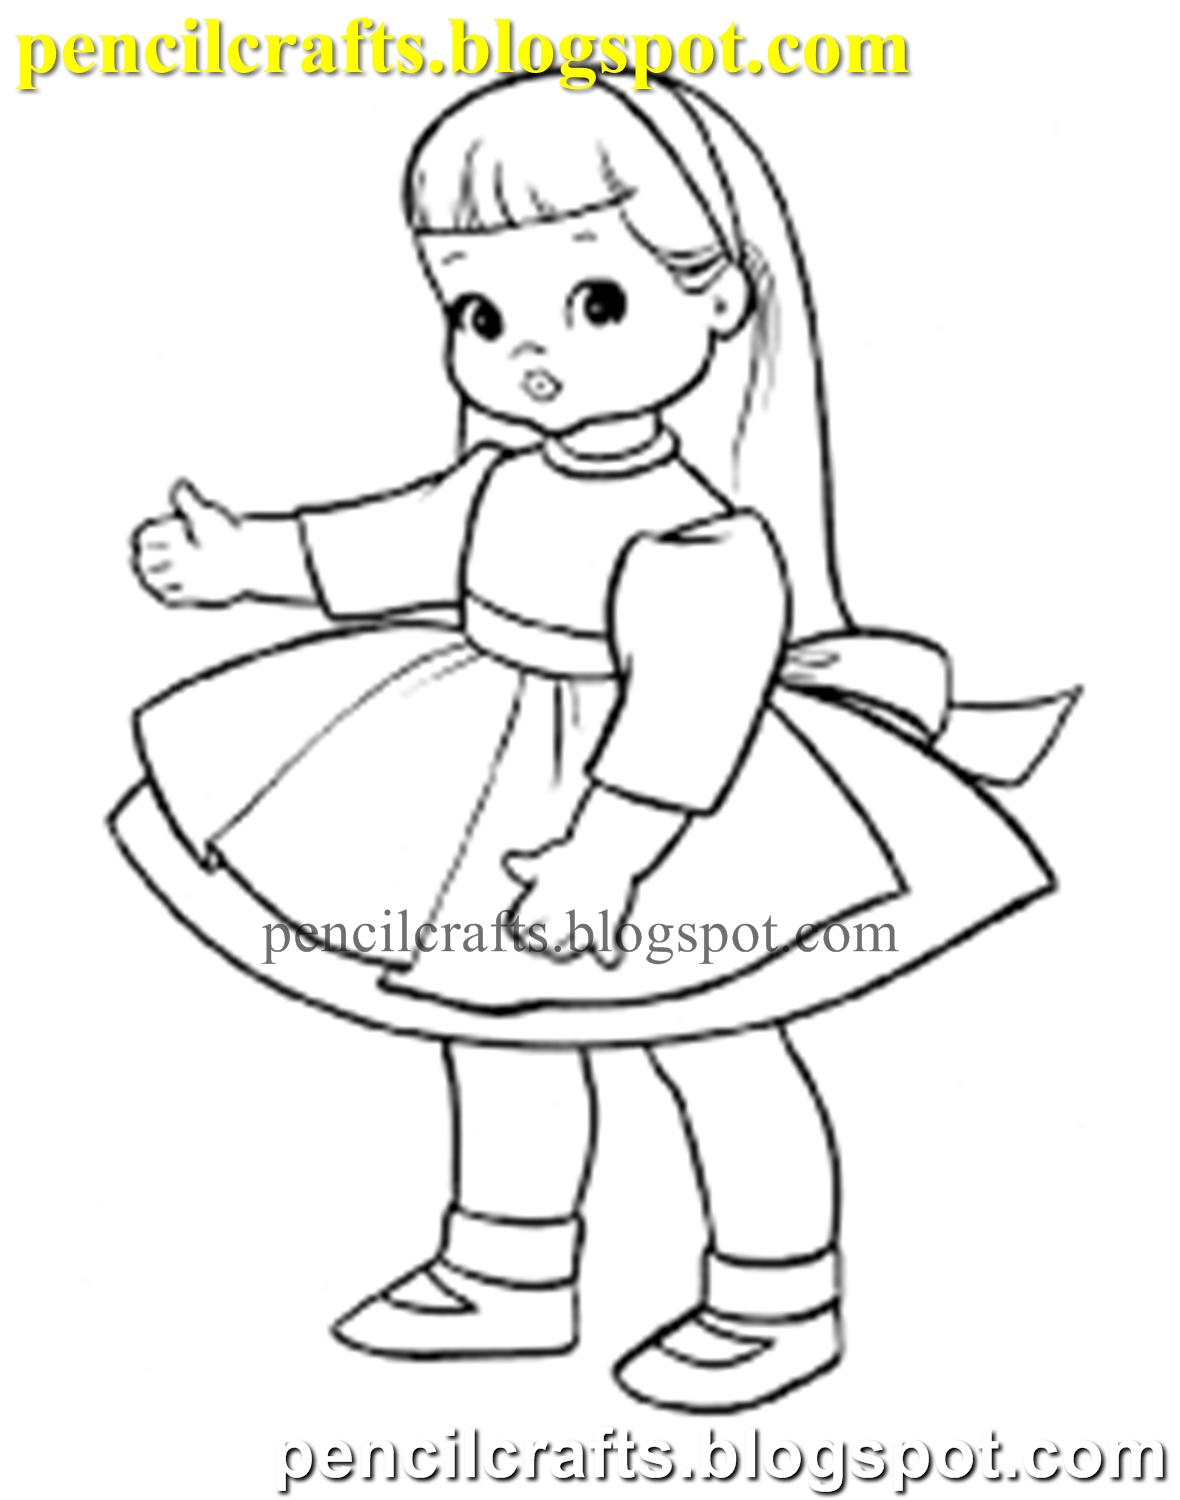 Doll Drawing Easy : drawing, PENCIL, DRAWINGS, DRAW|PENCIL, DRAWING, DOLLS